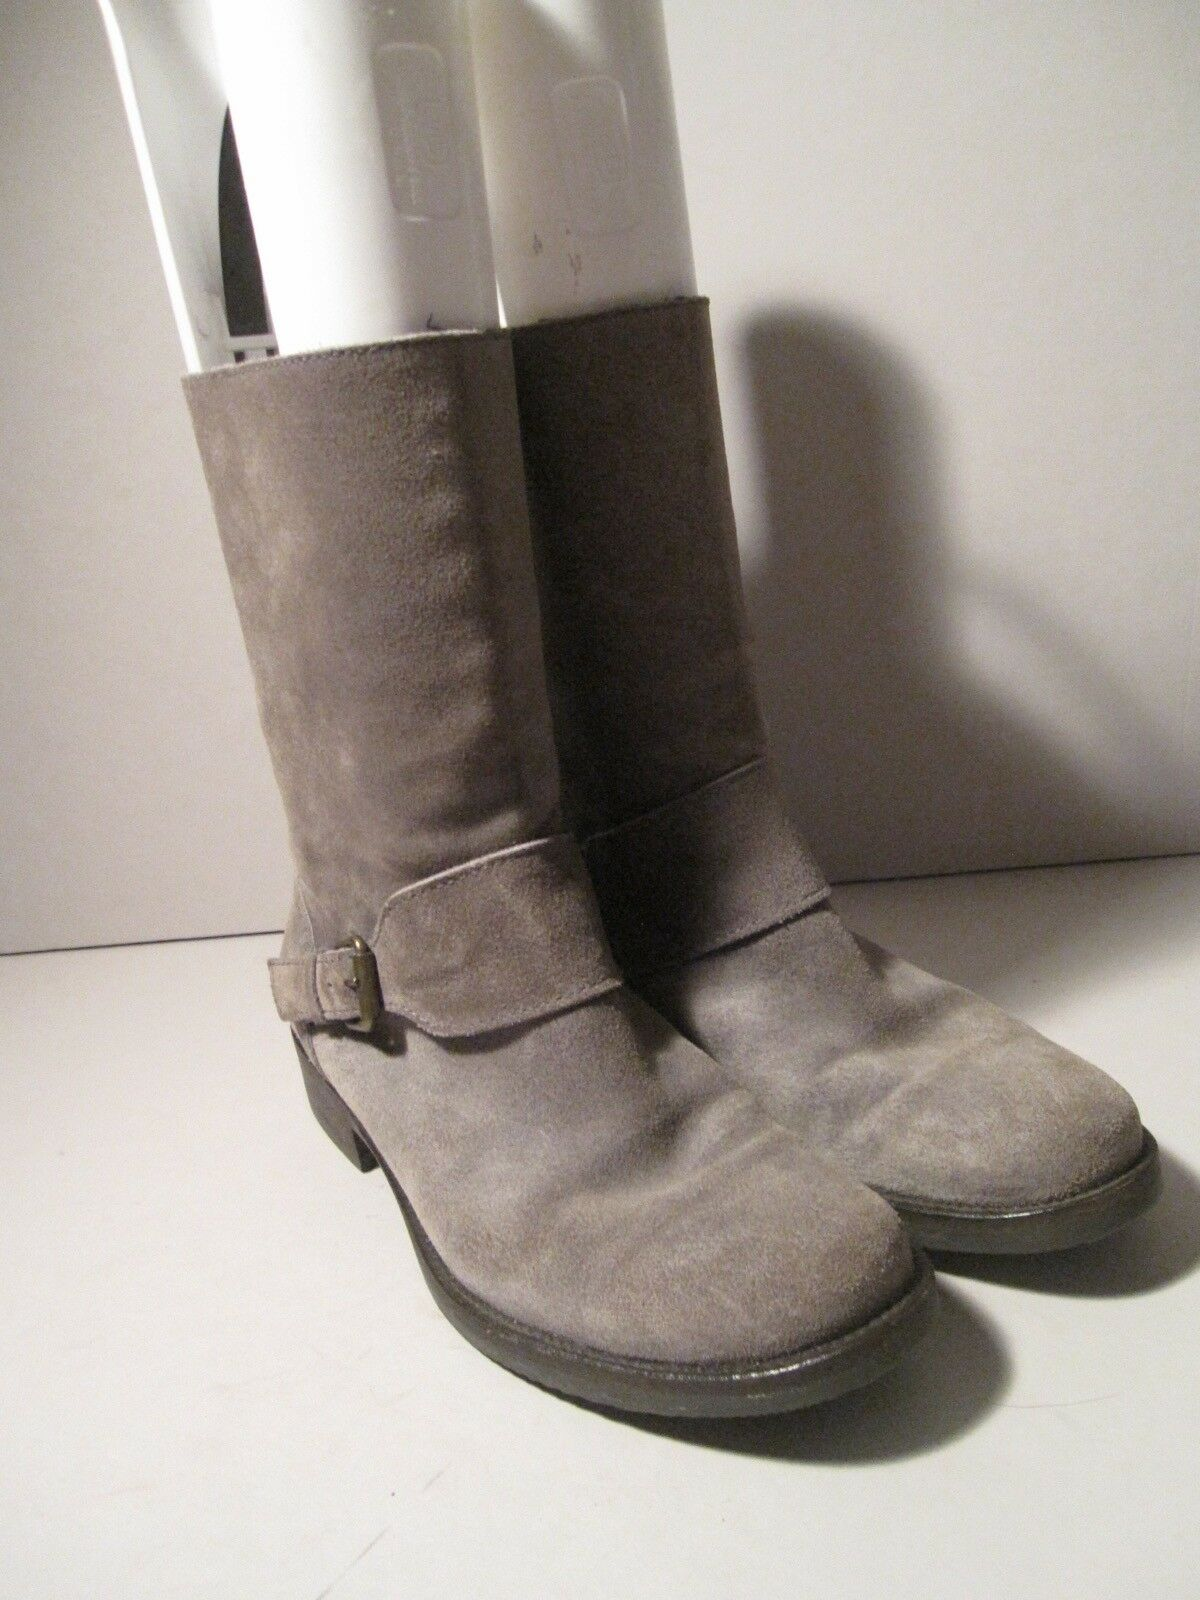 J. Crew 7.5 Braun Grayish Taupe Neutral Suede A+ Mid Calf Buckle Stiefel A+ Suede RDUCED e62fc6